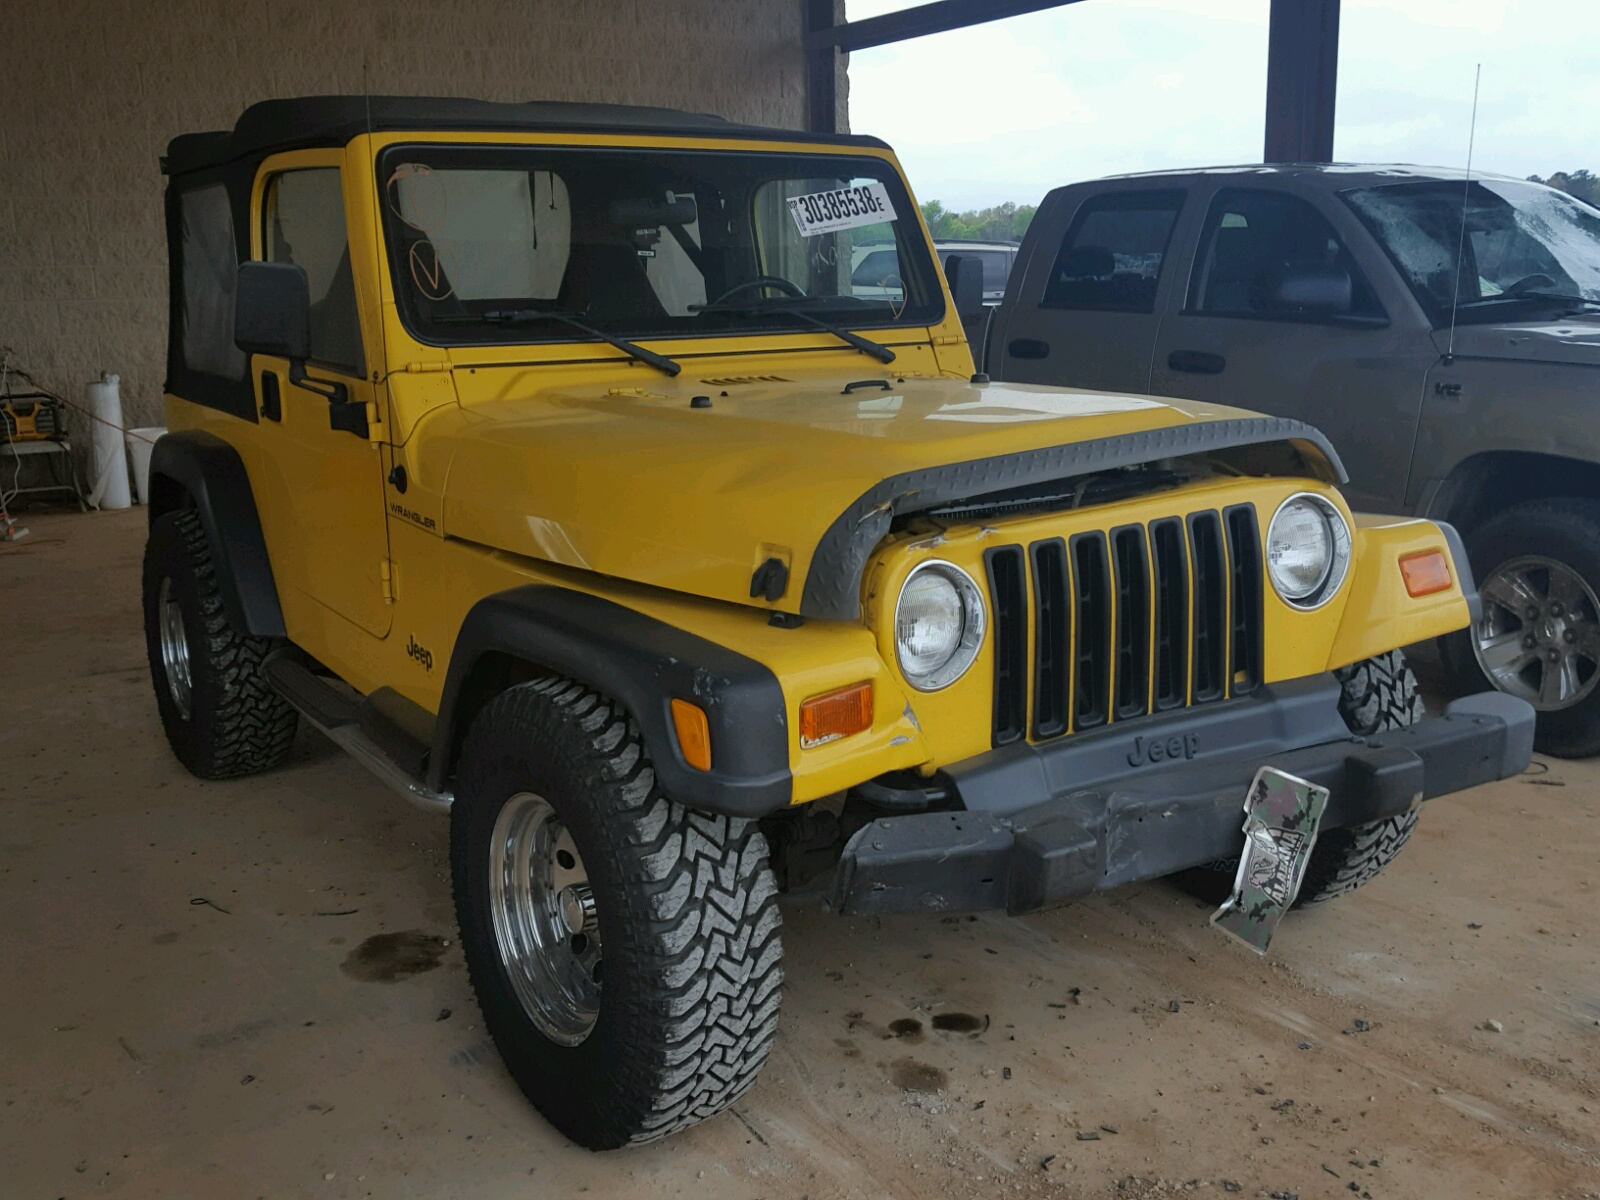 block new long runs with sensors all questions pump and wrangler discussion jeep fuel for islander cars pic no sale power